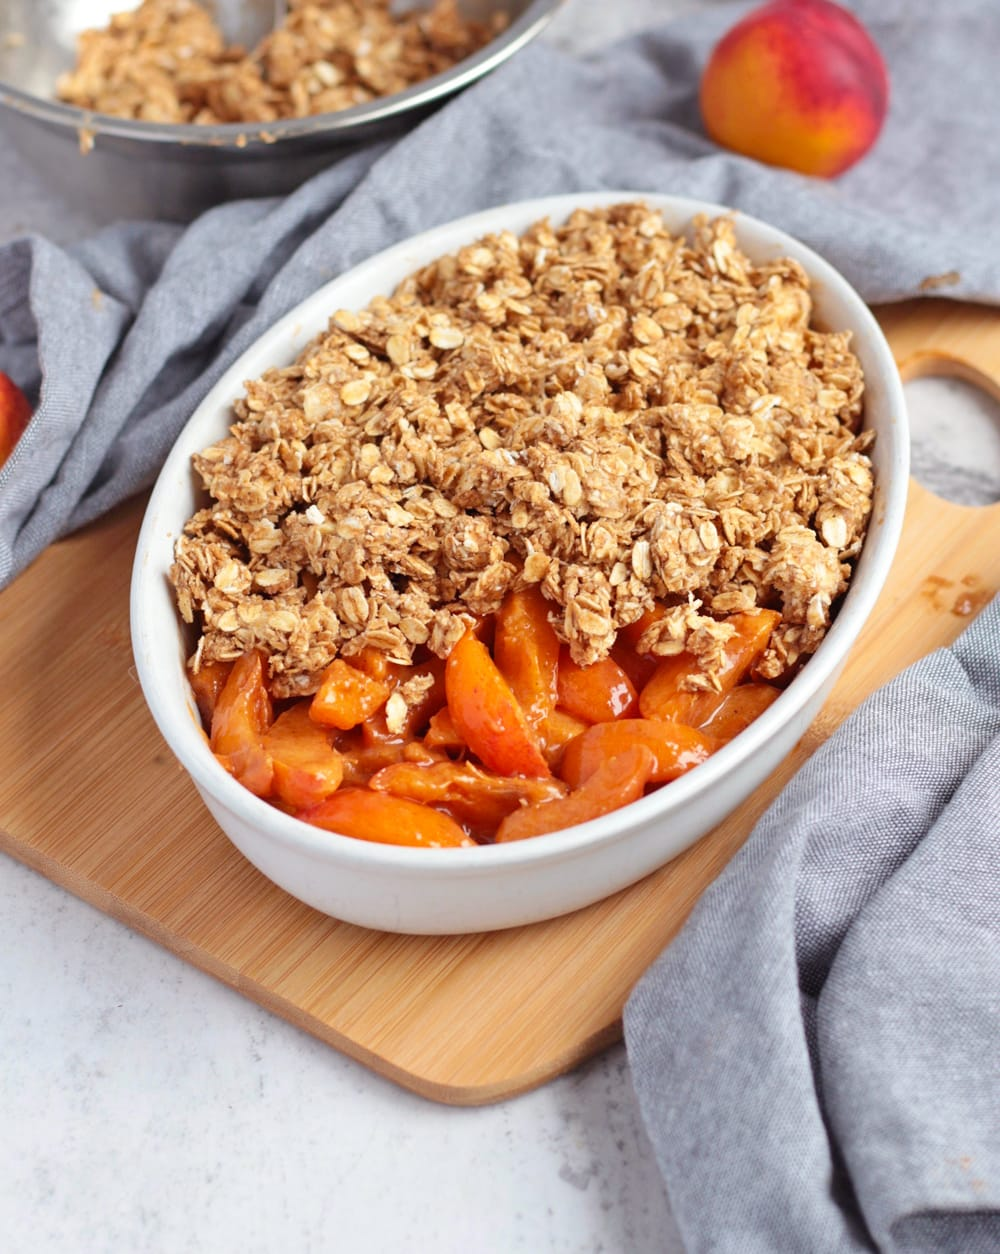 Apricot filling in a ceramic dish half covered by the crumble topping